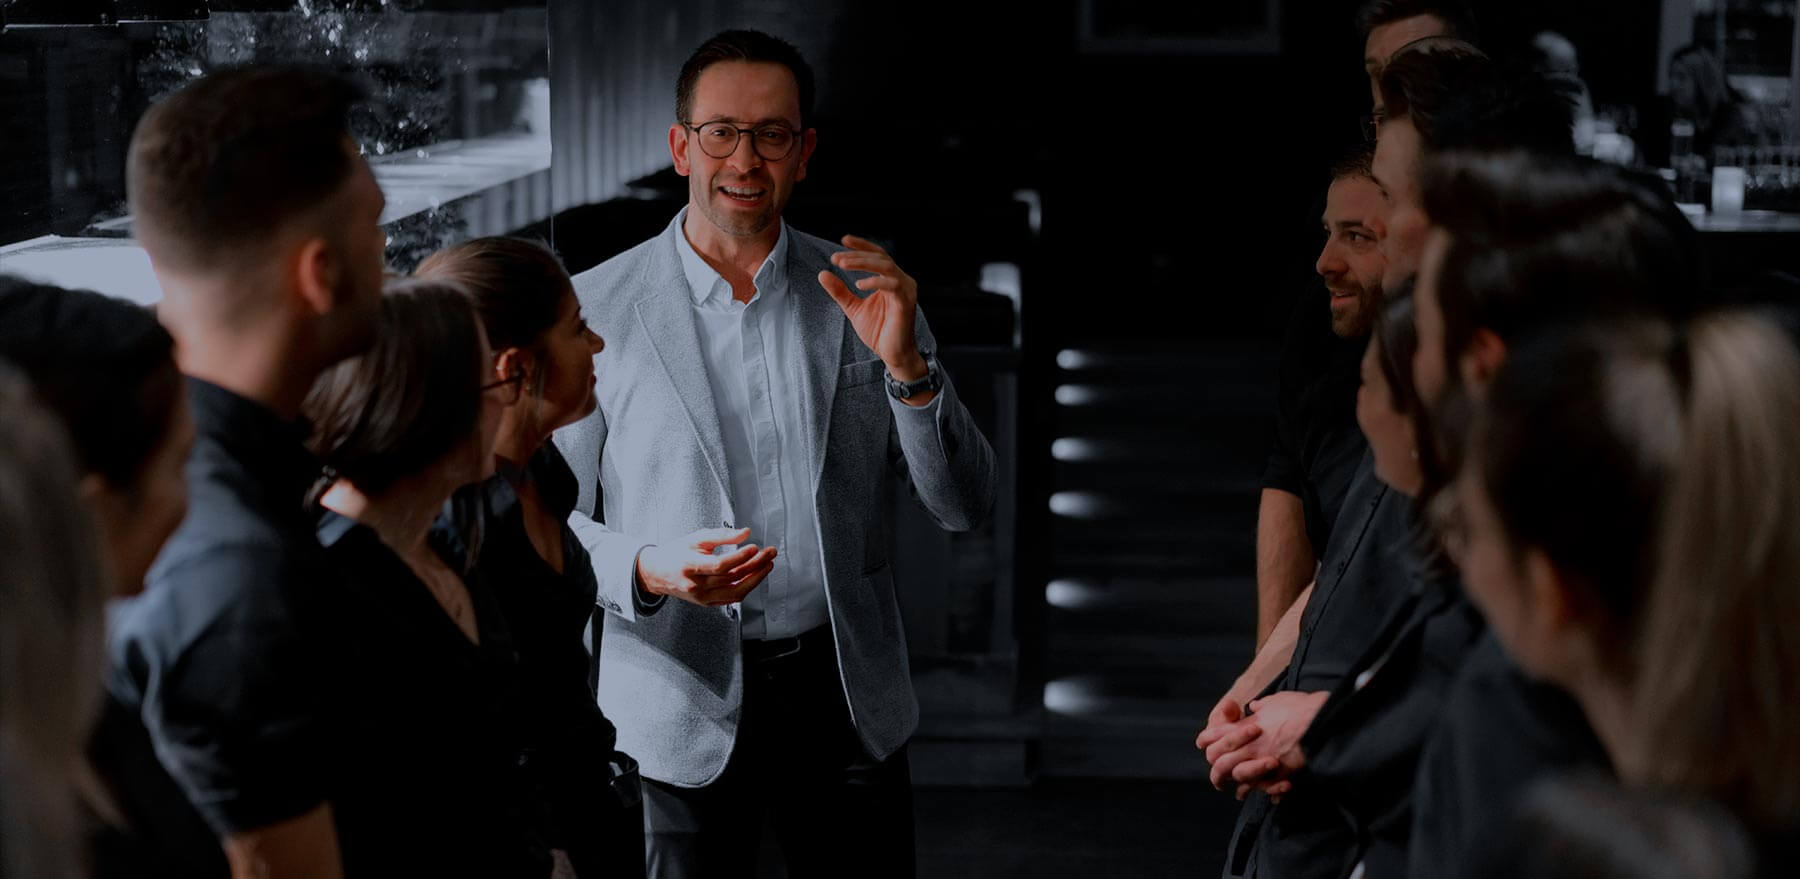 A director chatting with his team